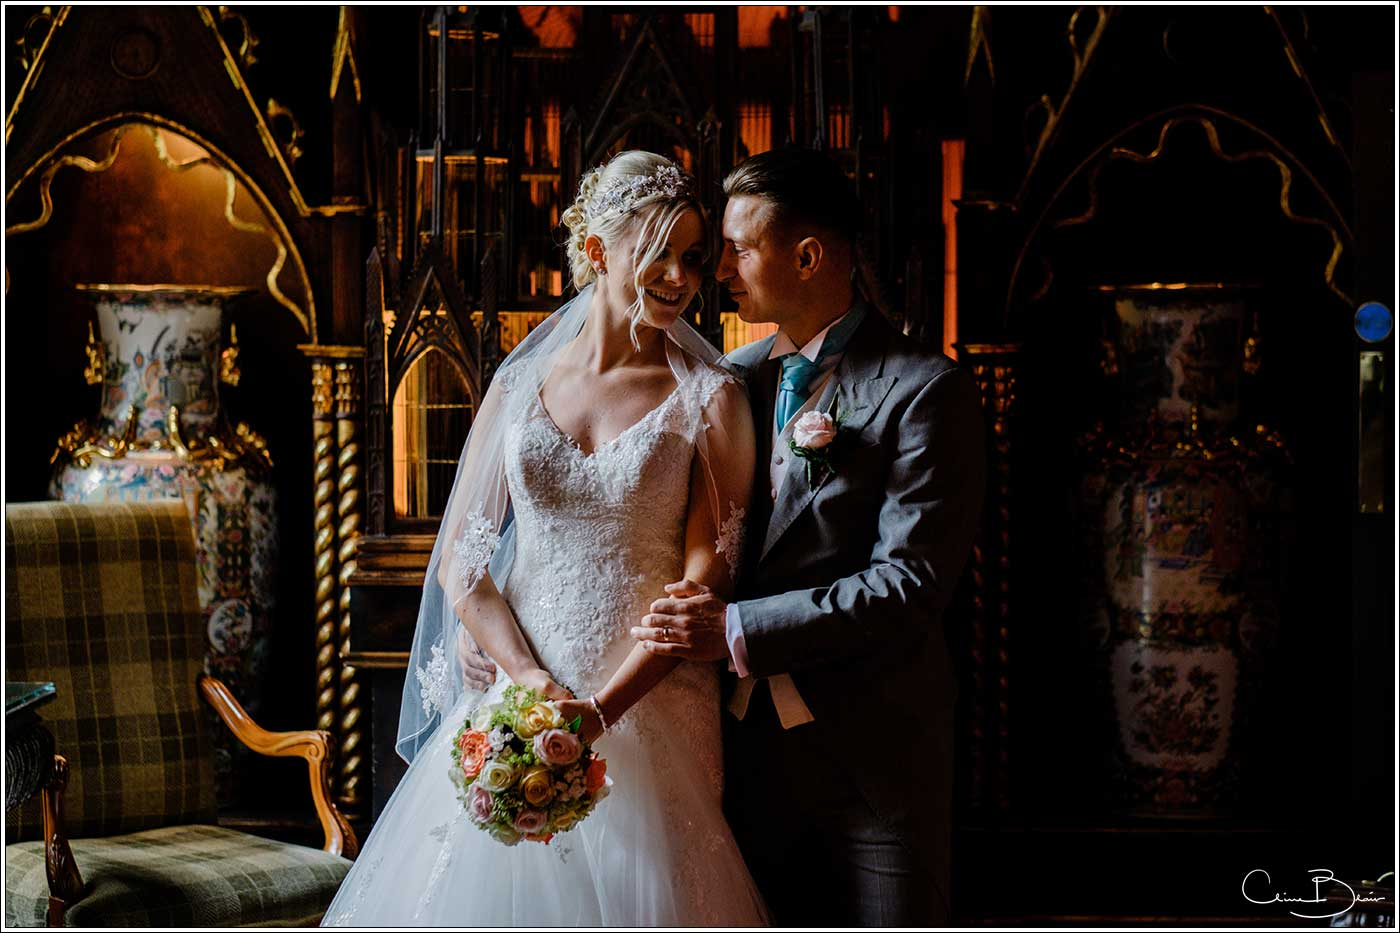 Coombe Abbey wedding photography showing bride and groom in side lighting